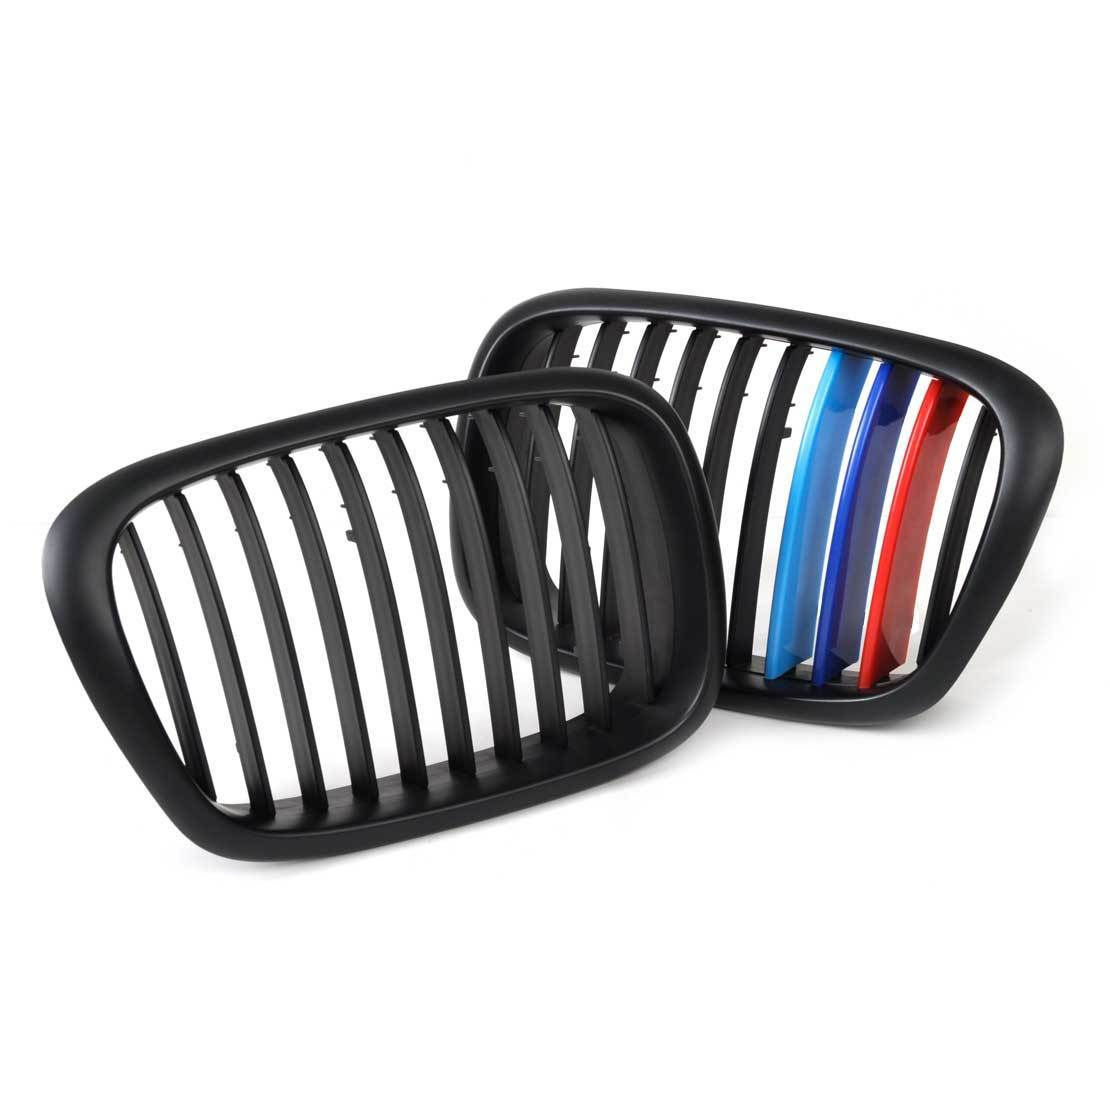 Matte Black Kidney Car Front Auto Car Racing Grille for BMW E39 5 Series 1995-2004 For Cars